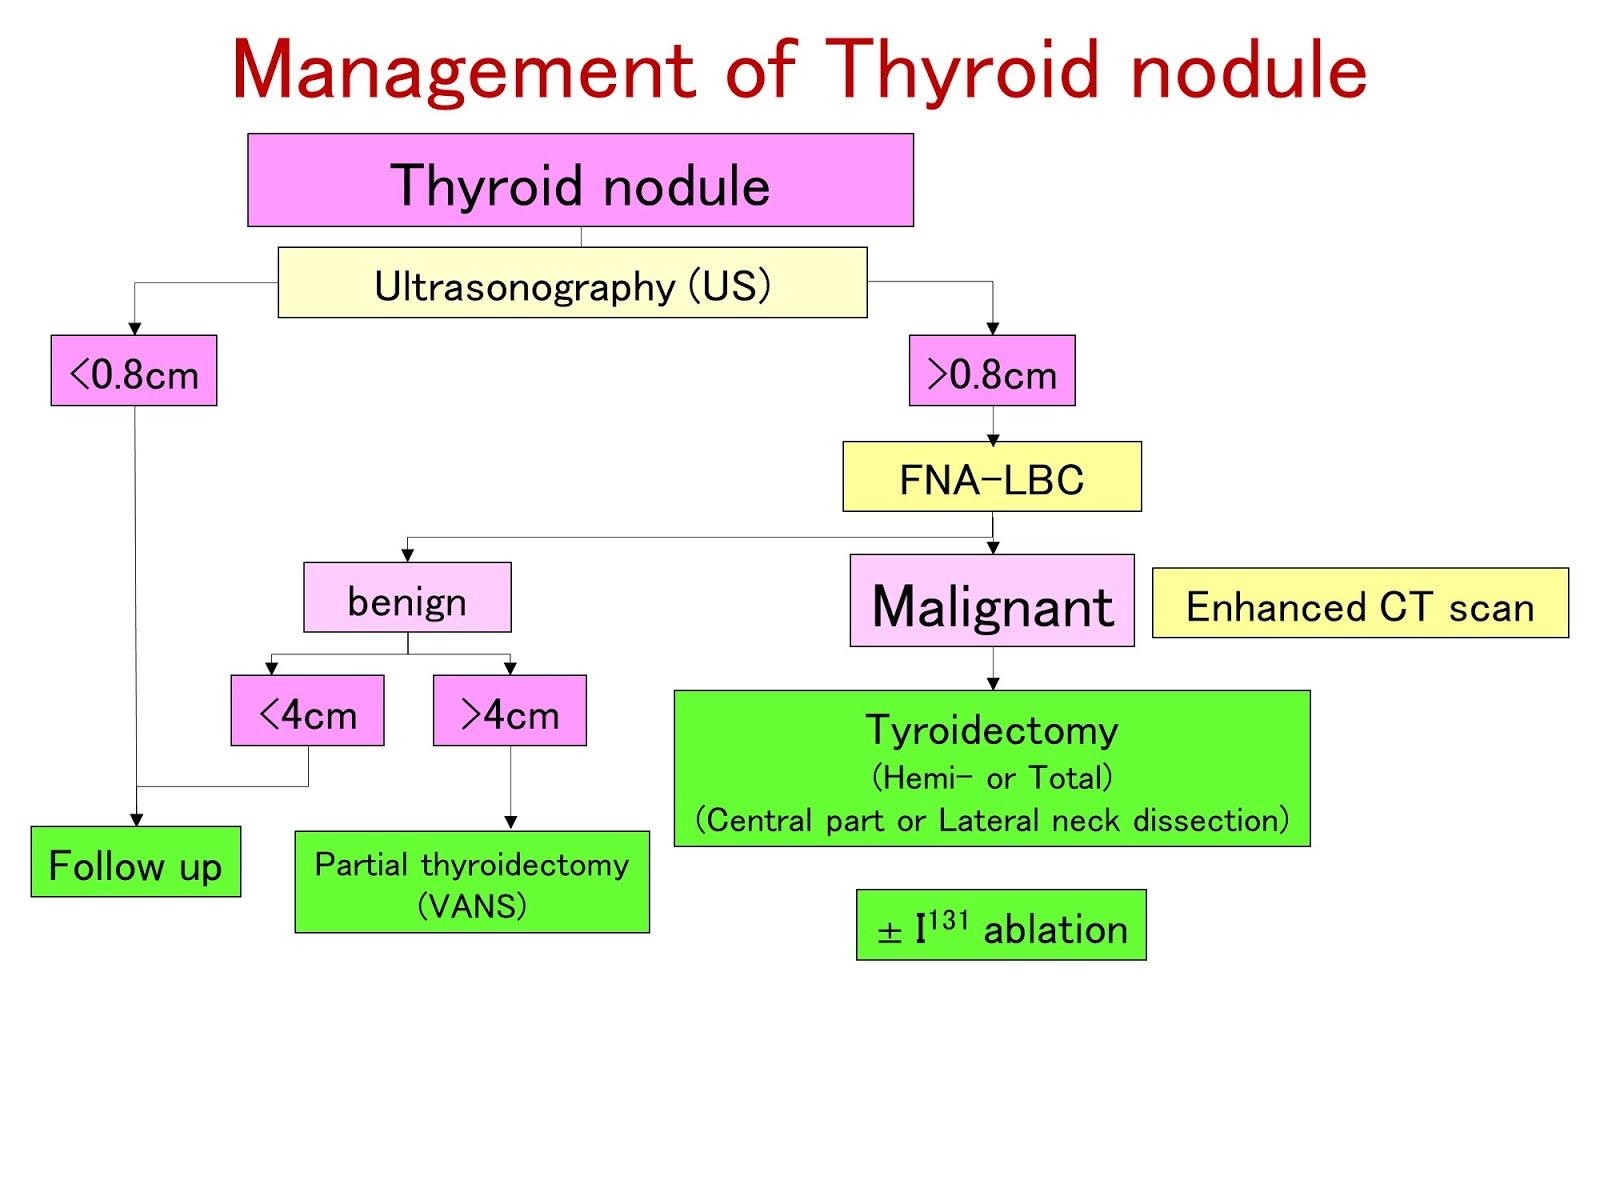 Department of otolaryngology head and neck surgery hokuto hospital a healthy thyroid gland is not palpable if a tumor develops in the thyroid it is felt as a lump in the neck ccuart Images